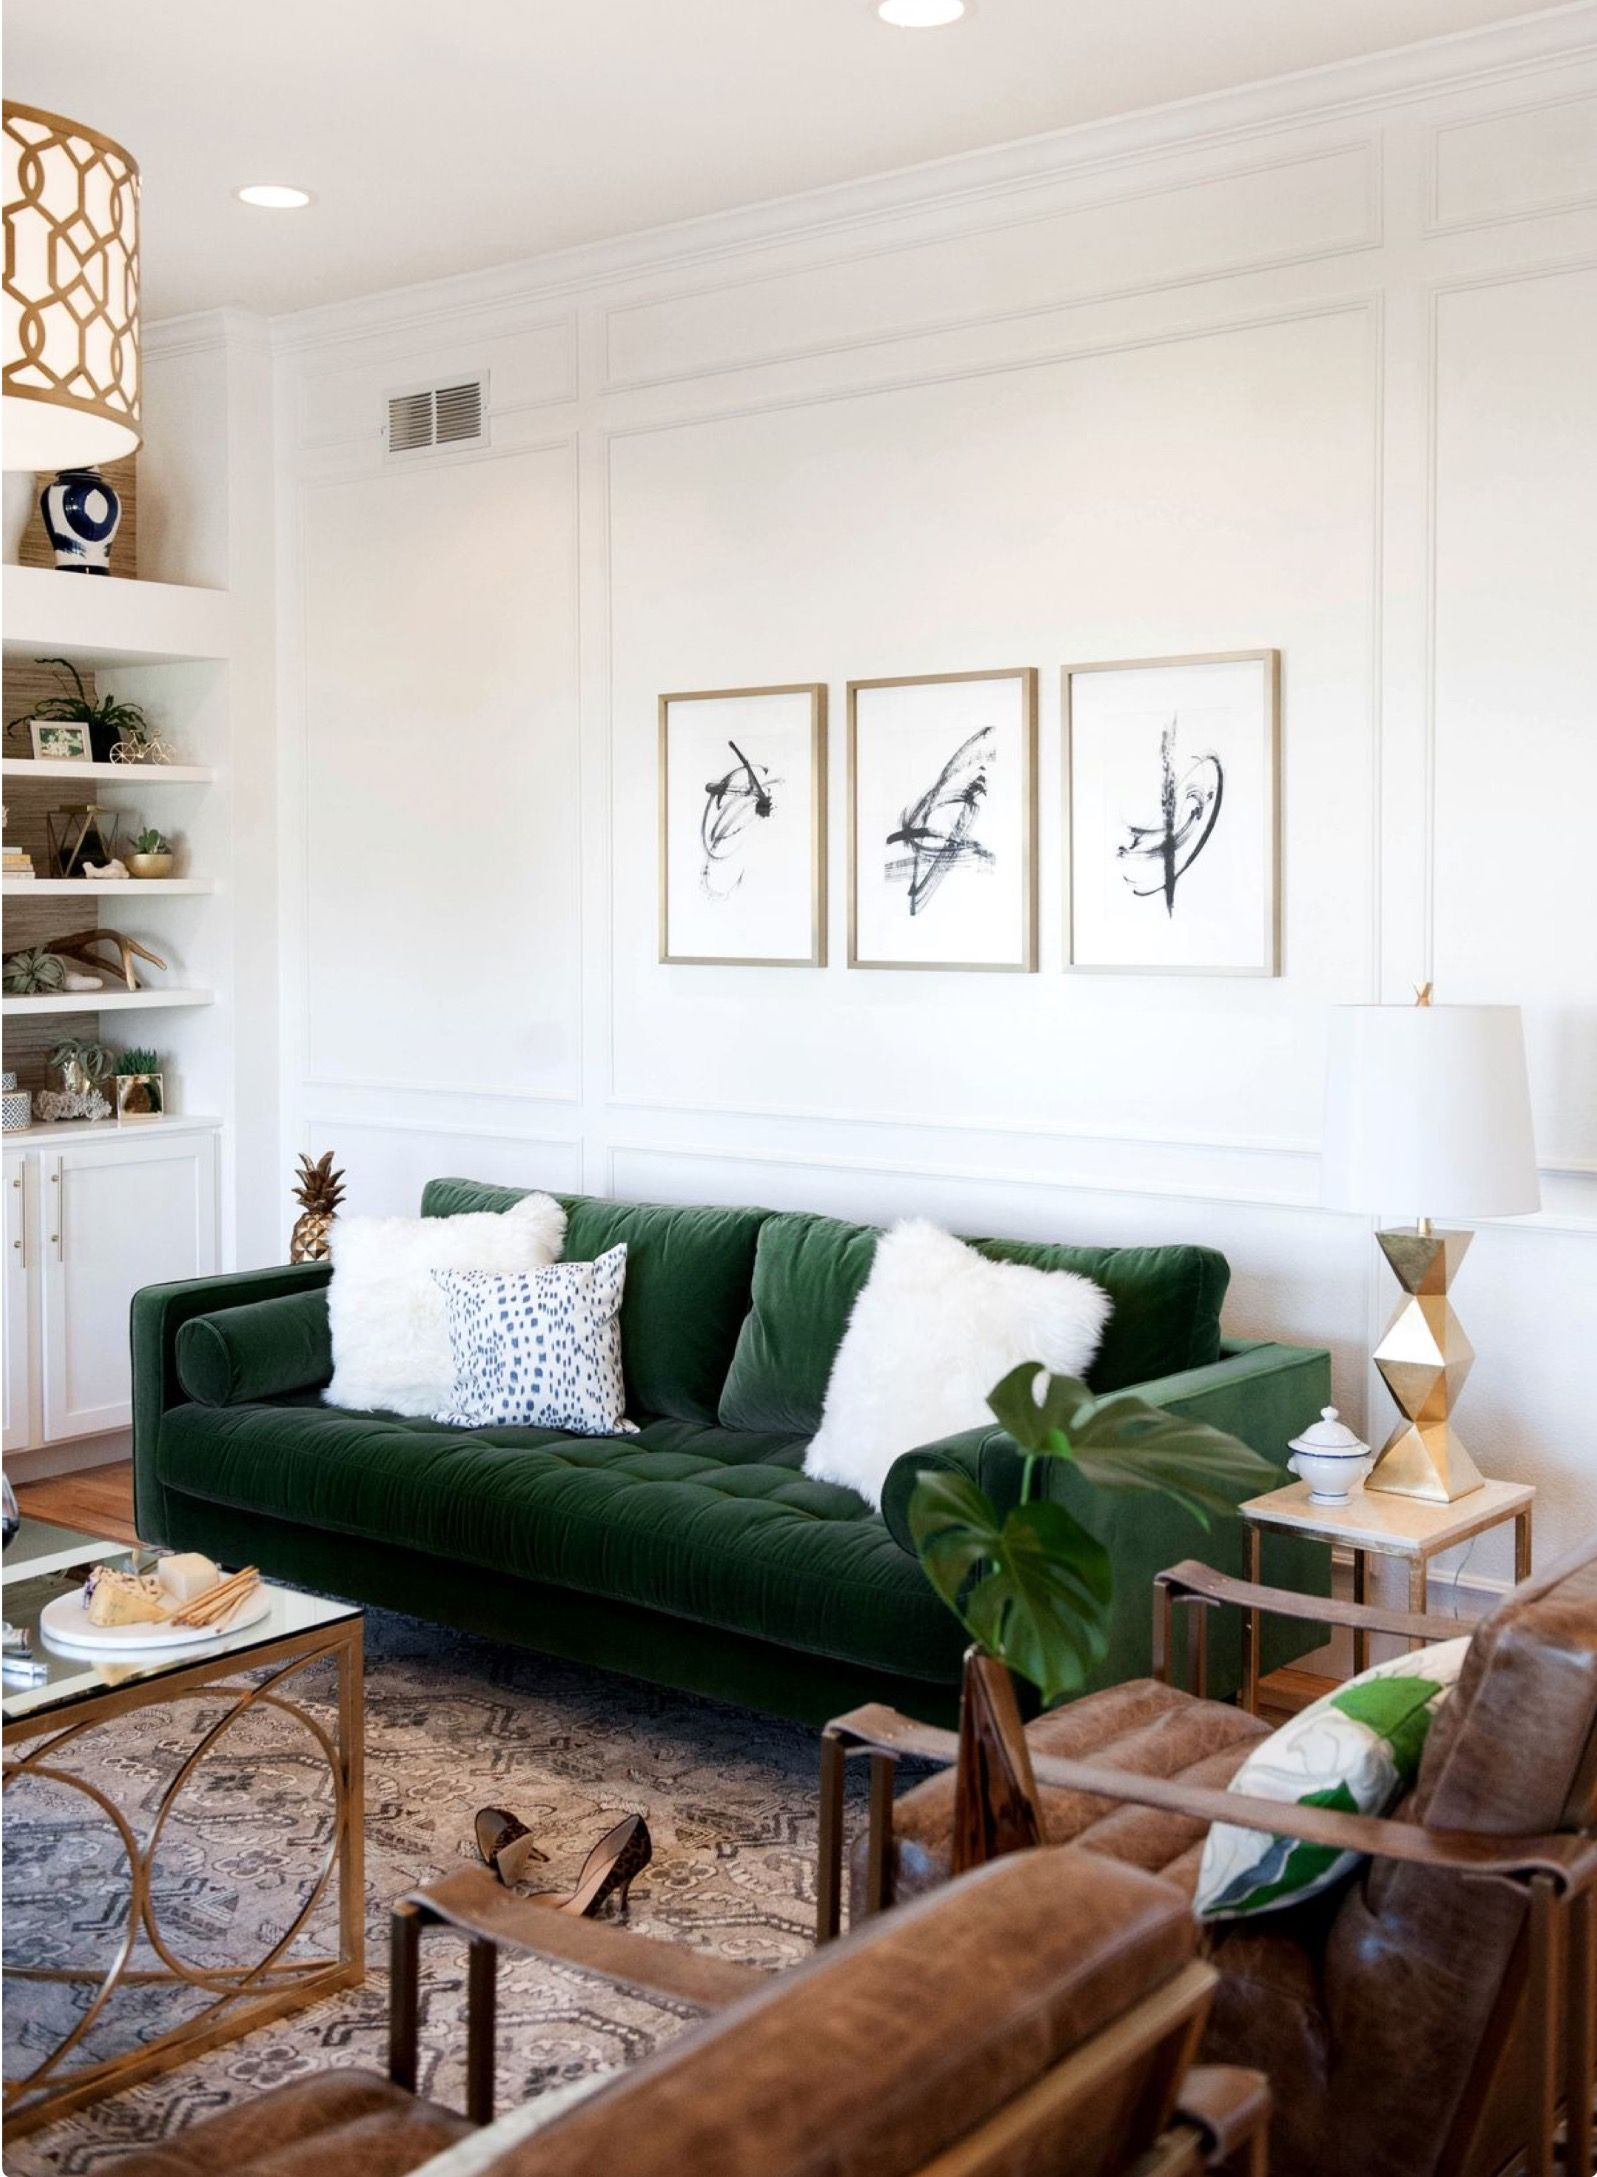 Pin by Christina Frederick on home | Pinterest | Living rooms ...